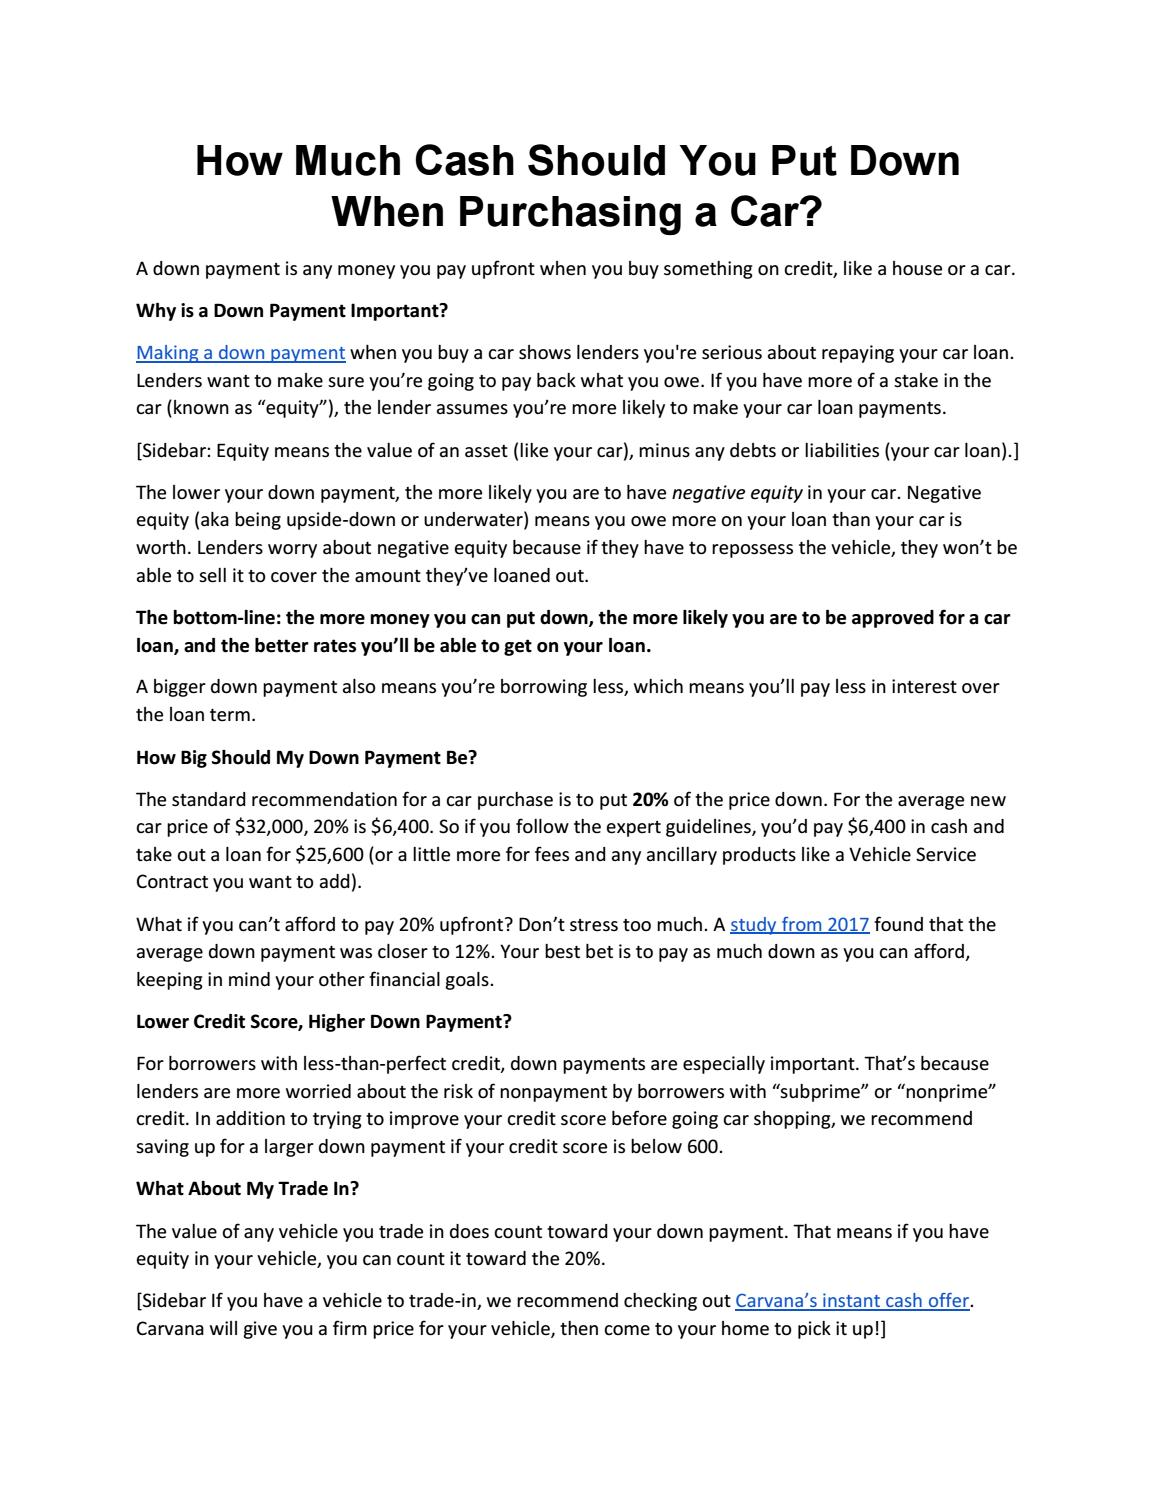 How Much Should You Put Down On A Car >> How Much Cash Should You Put Down When Purchasing A Car By